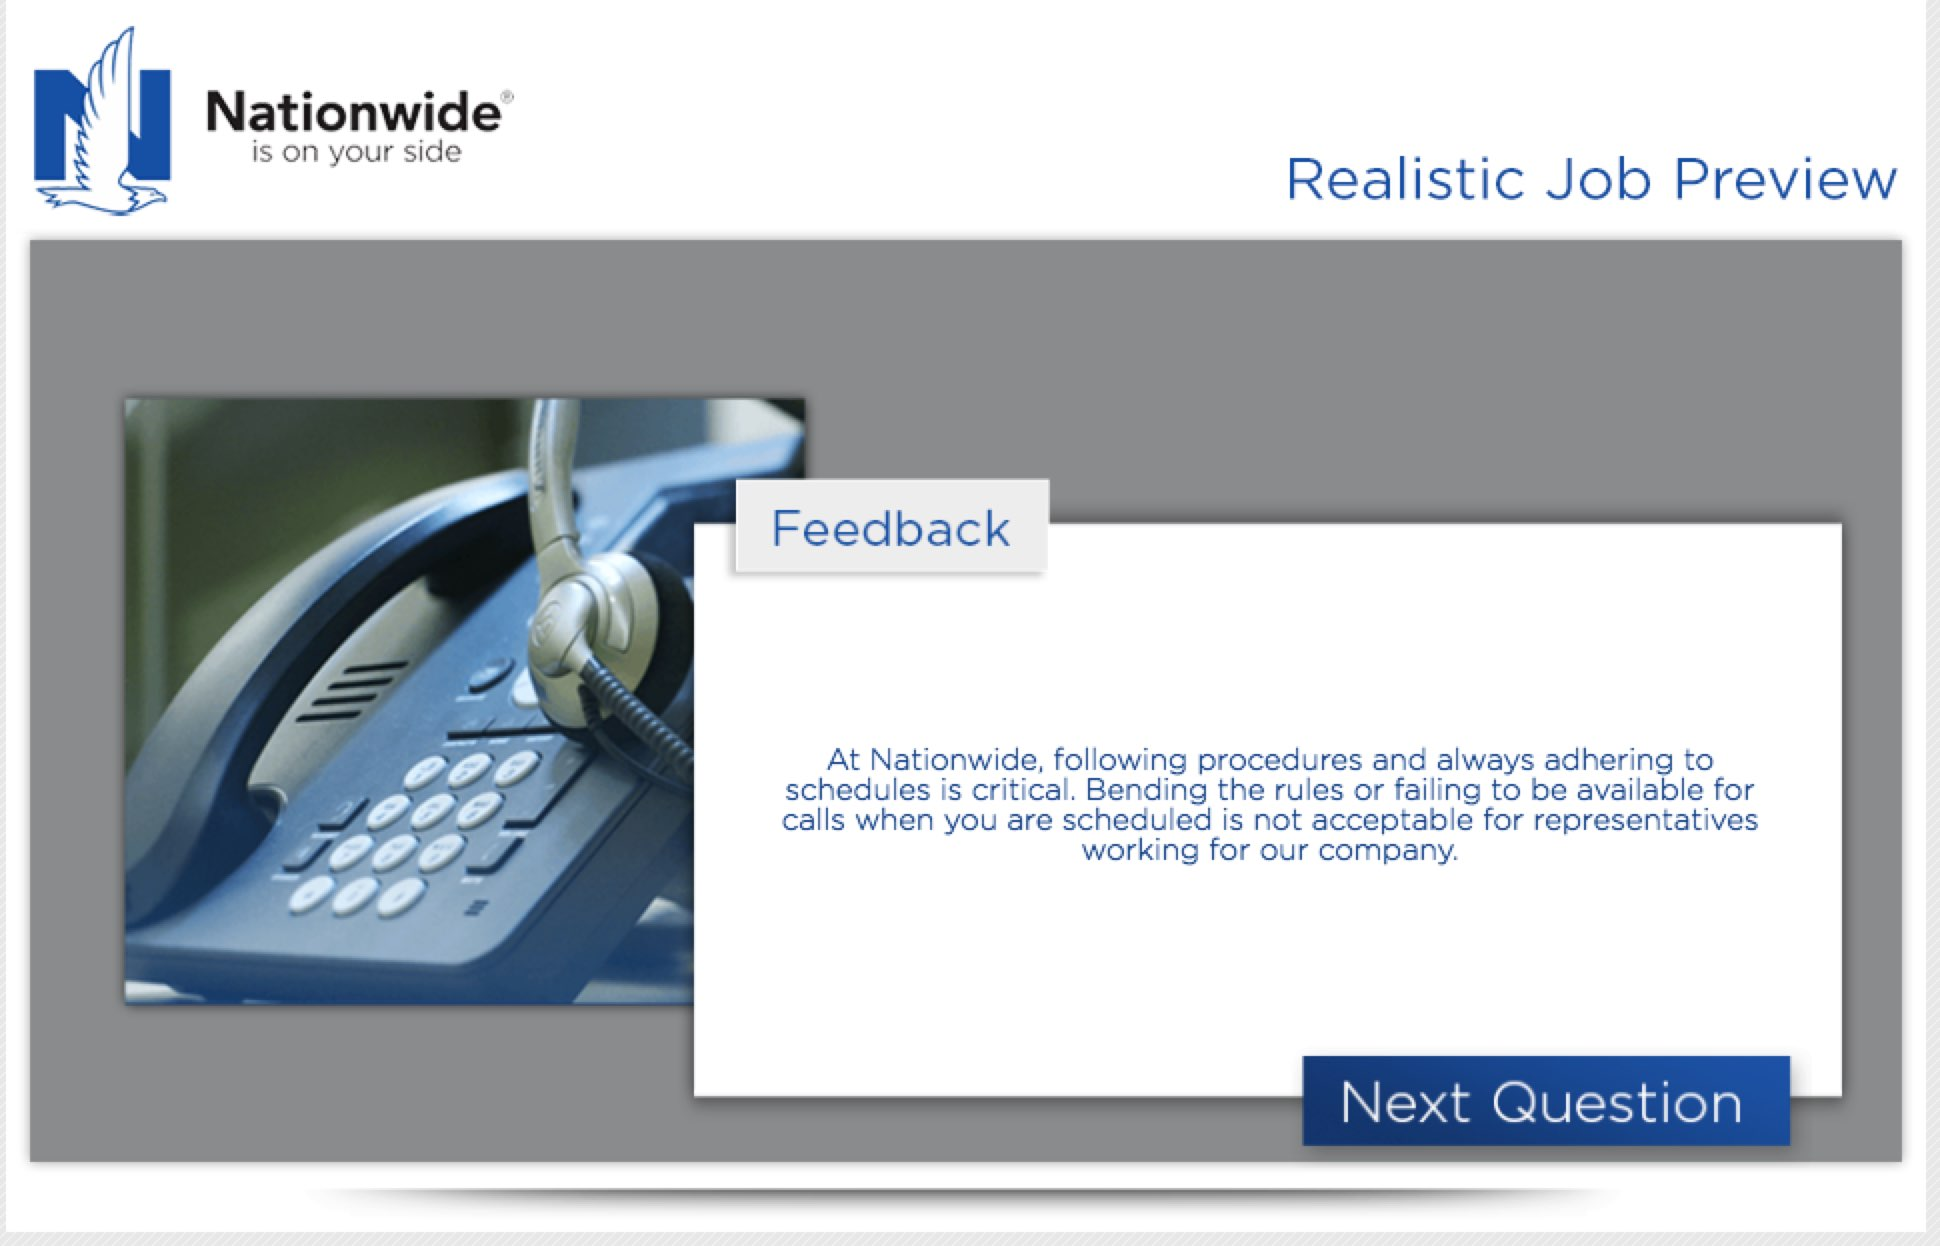 RJP Realistic Job Preview example Nationwide Insurance | Ongig